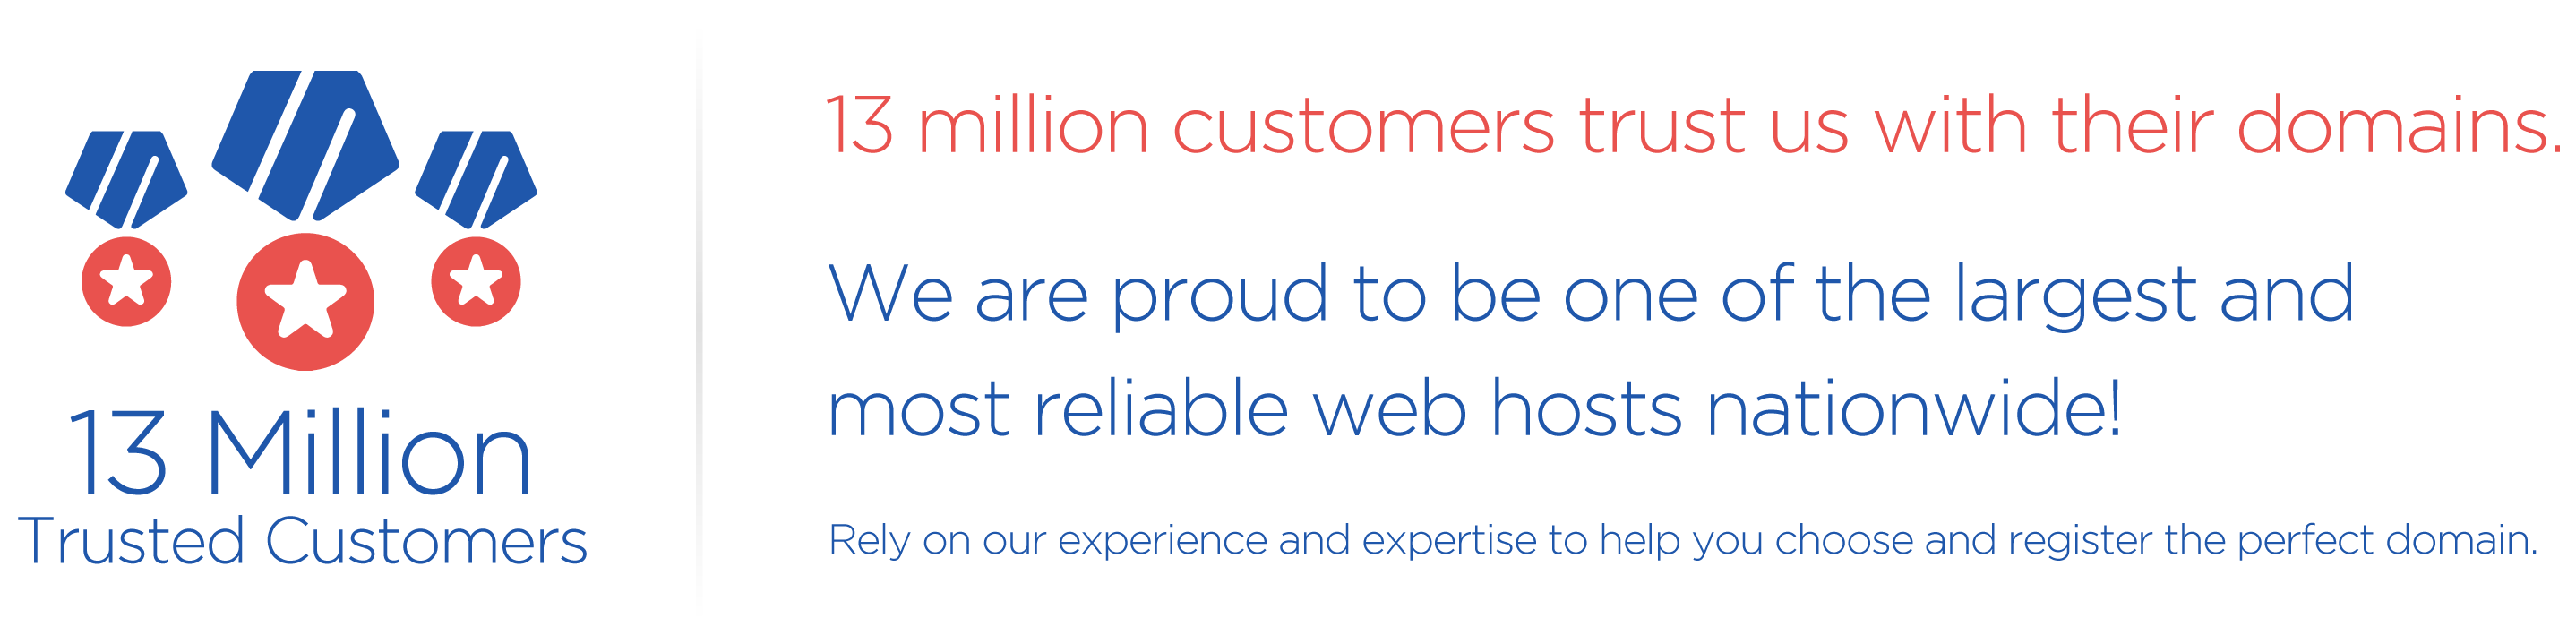 13 million trusted customers